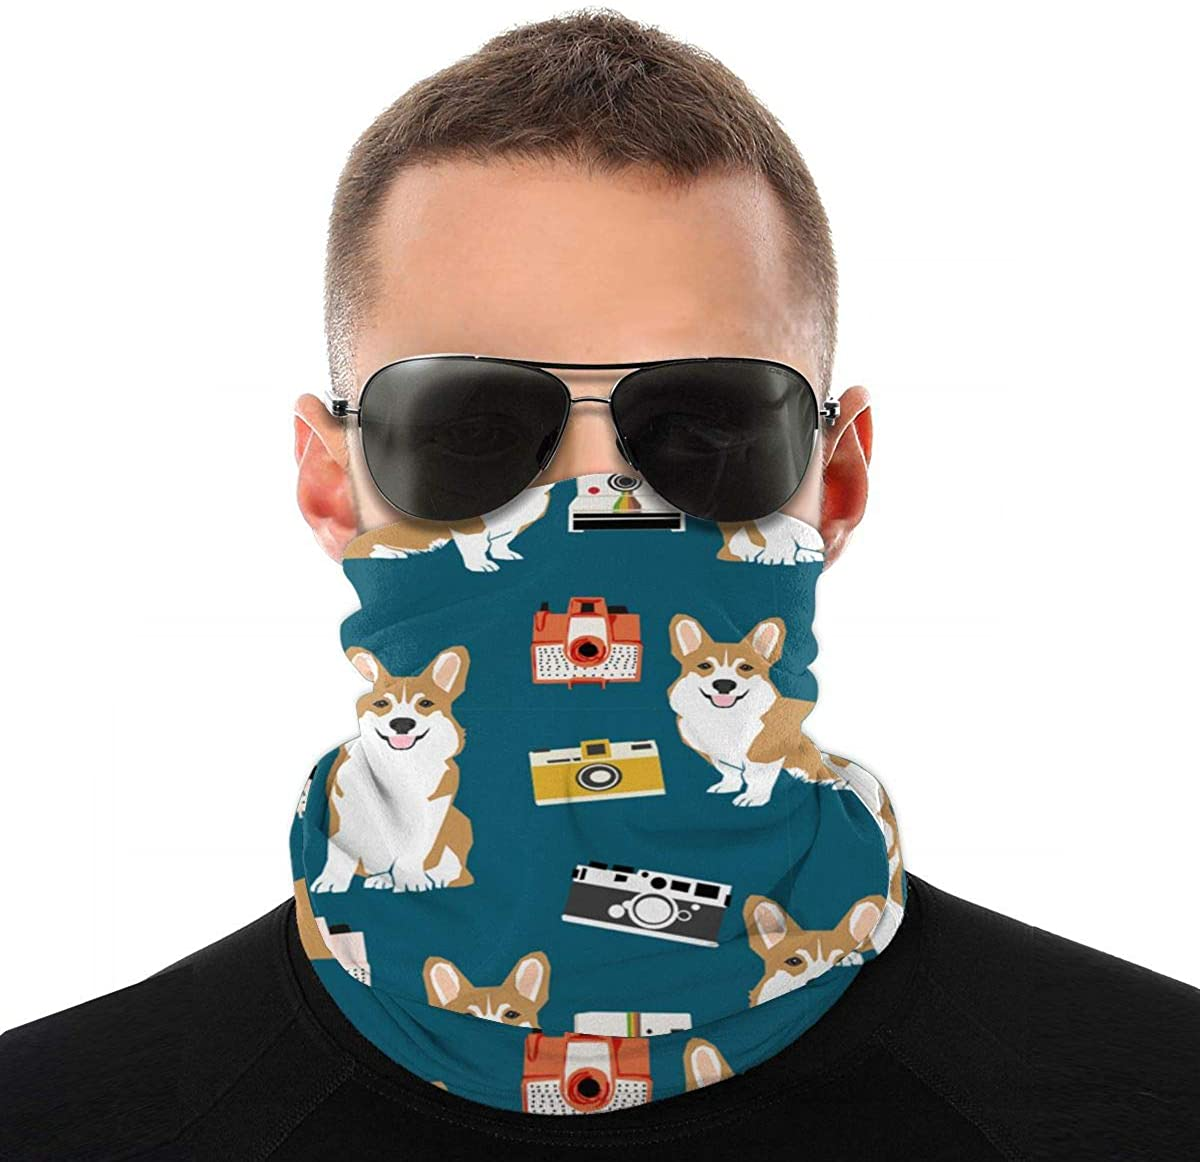 Corgi Face Scarf Neck Gaiter Tube Variety Head Scarf, Multifunctional Bandanas & Balaclava Anti Dust